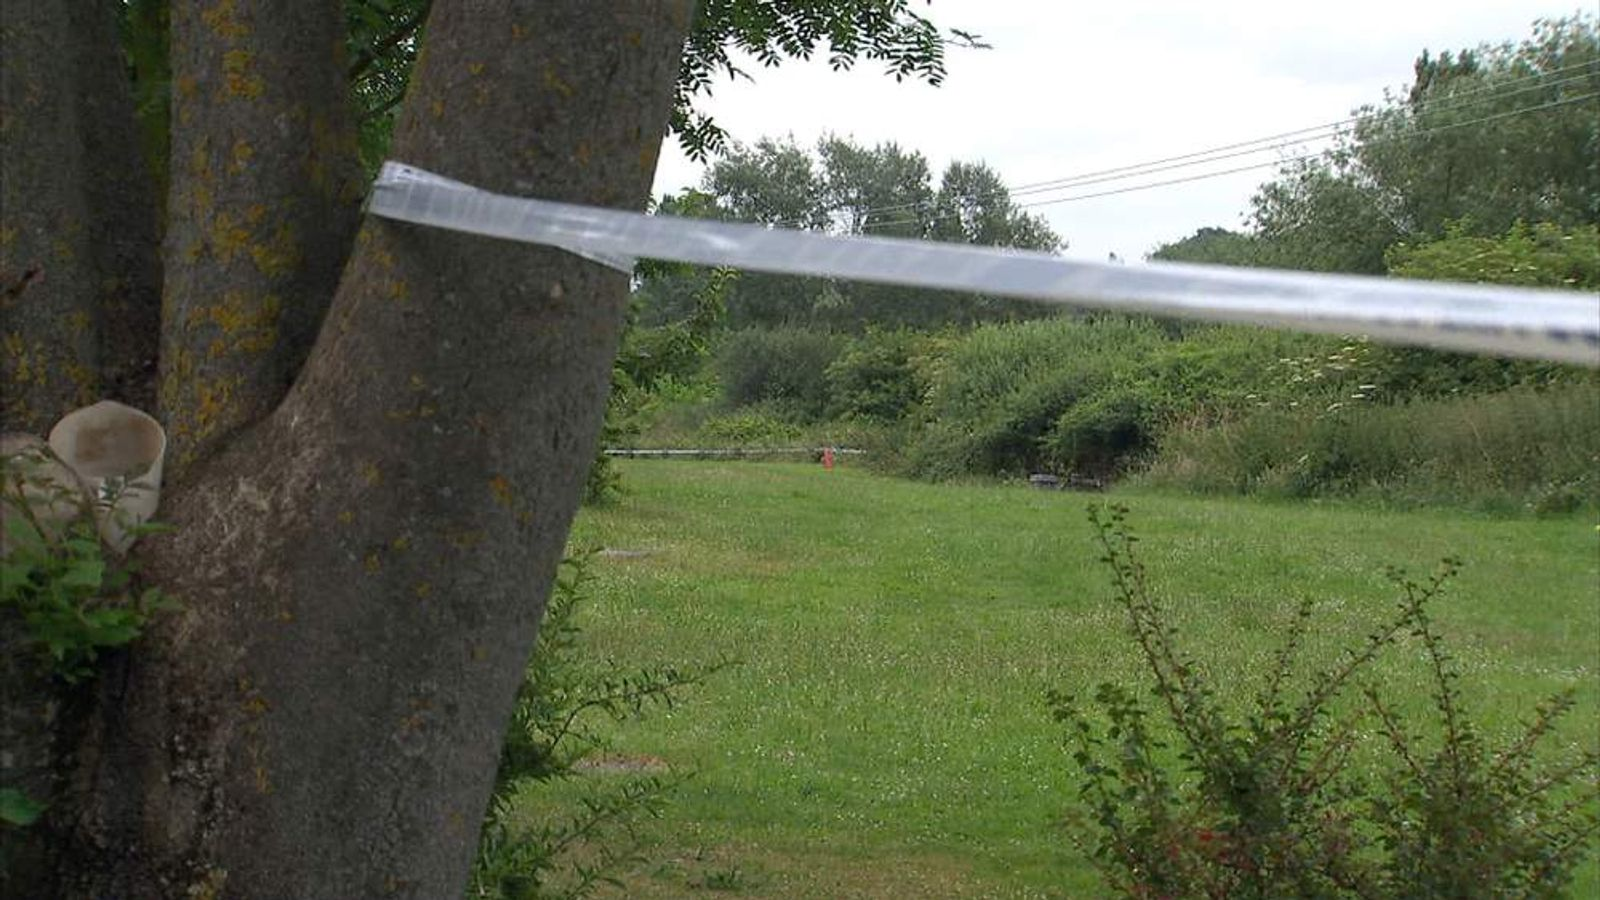 The scene of the stabbing of Nahid Almanea in Colchester, Essex.